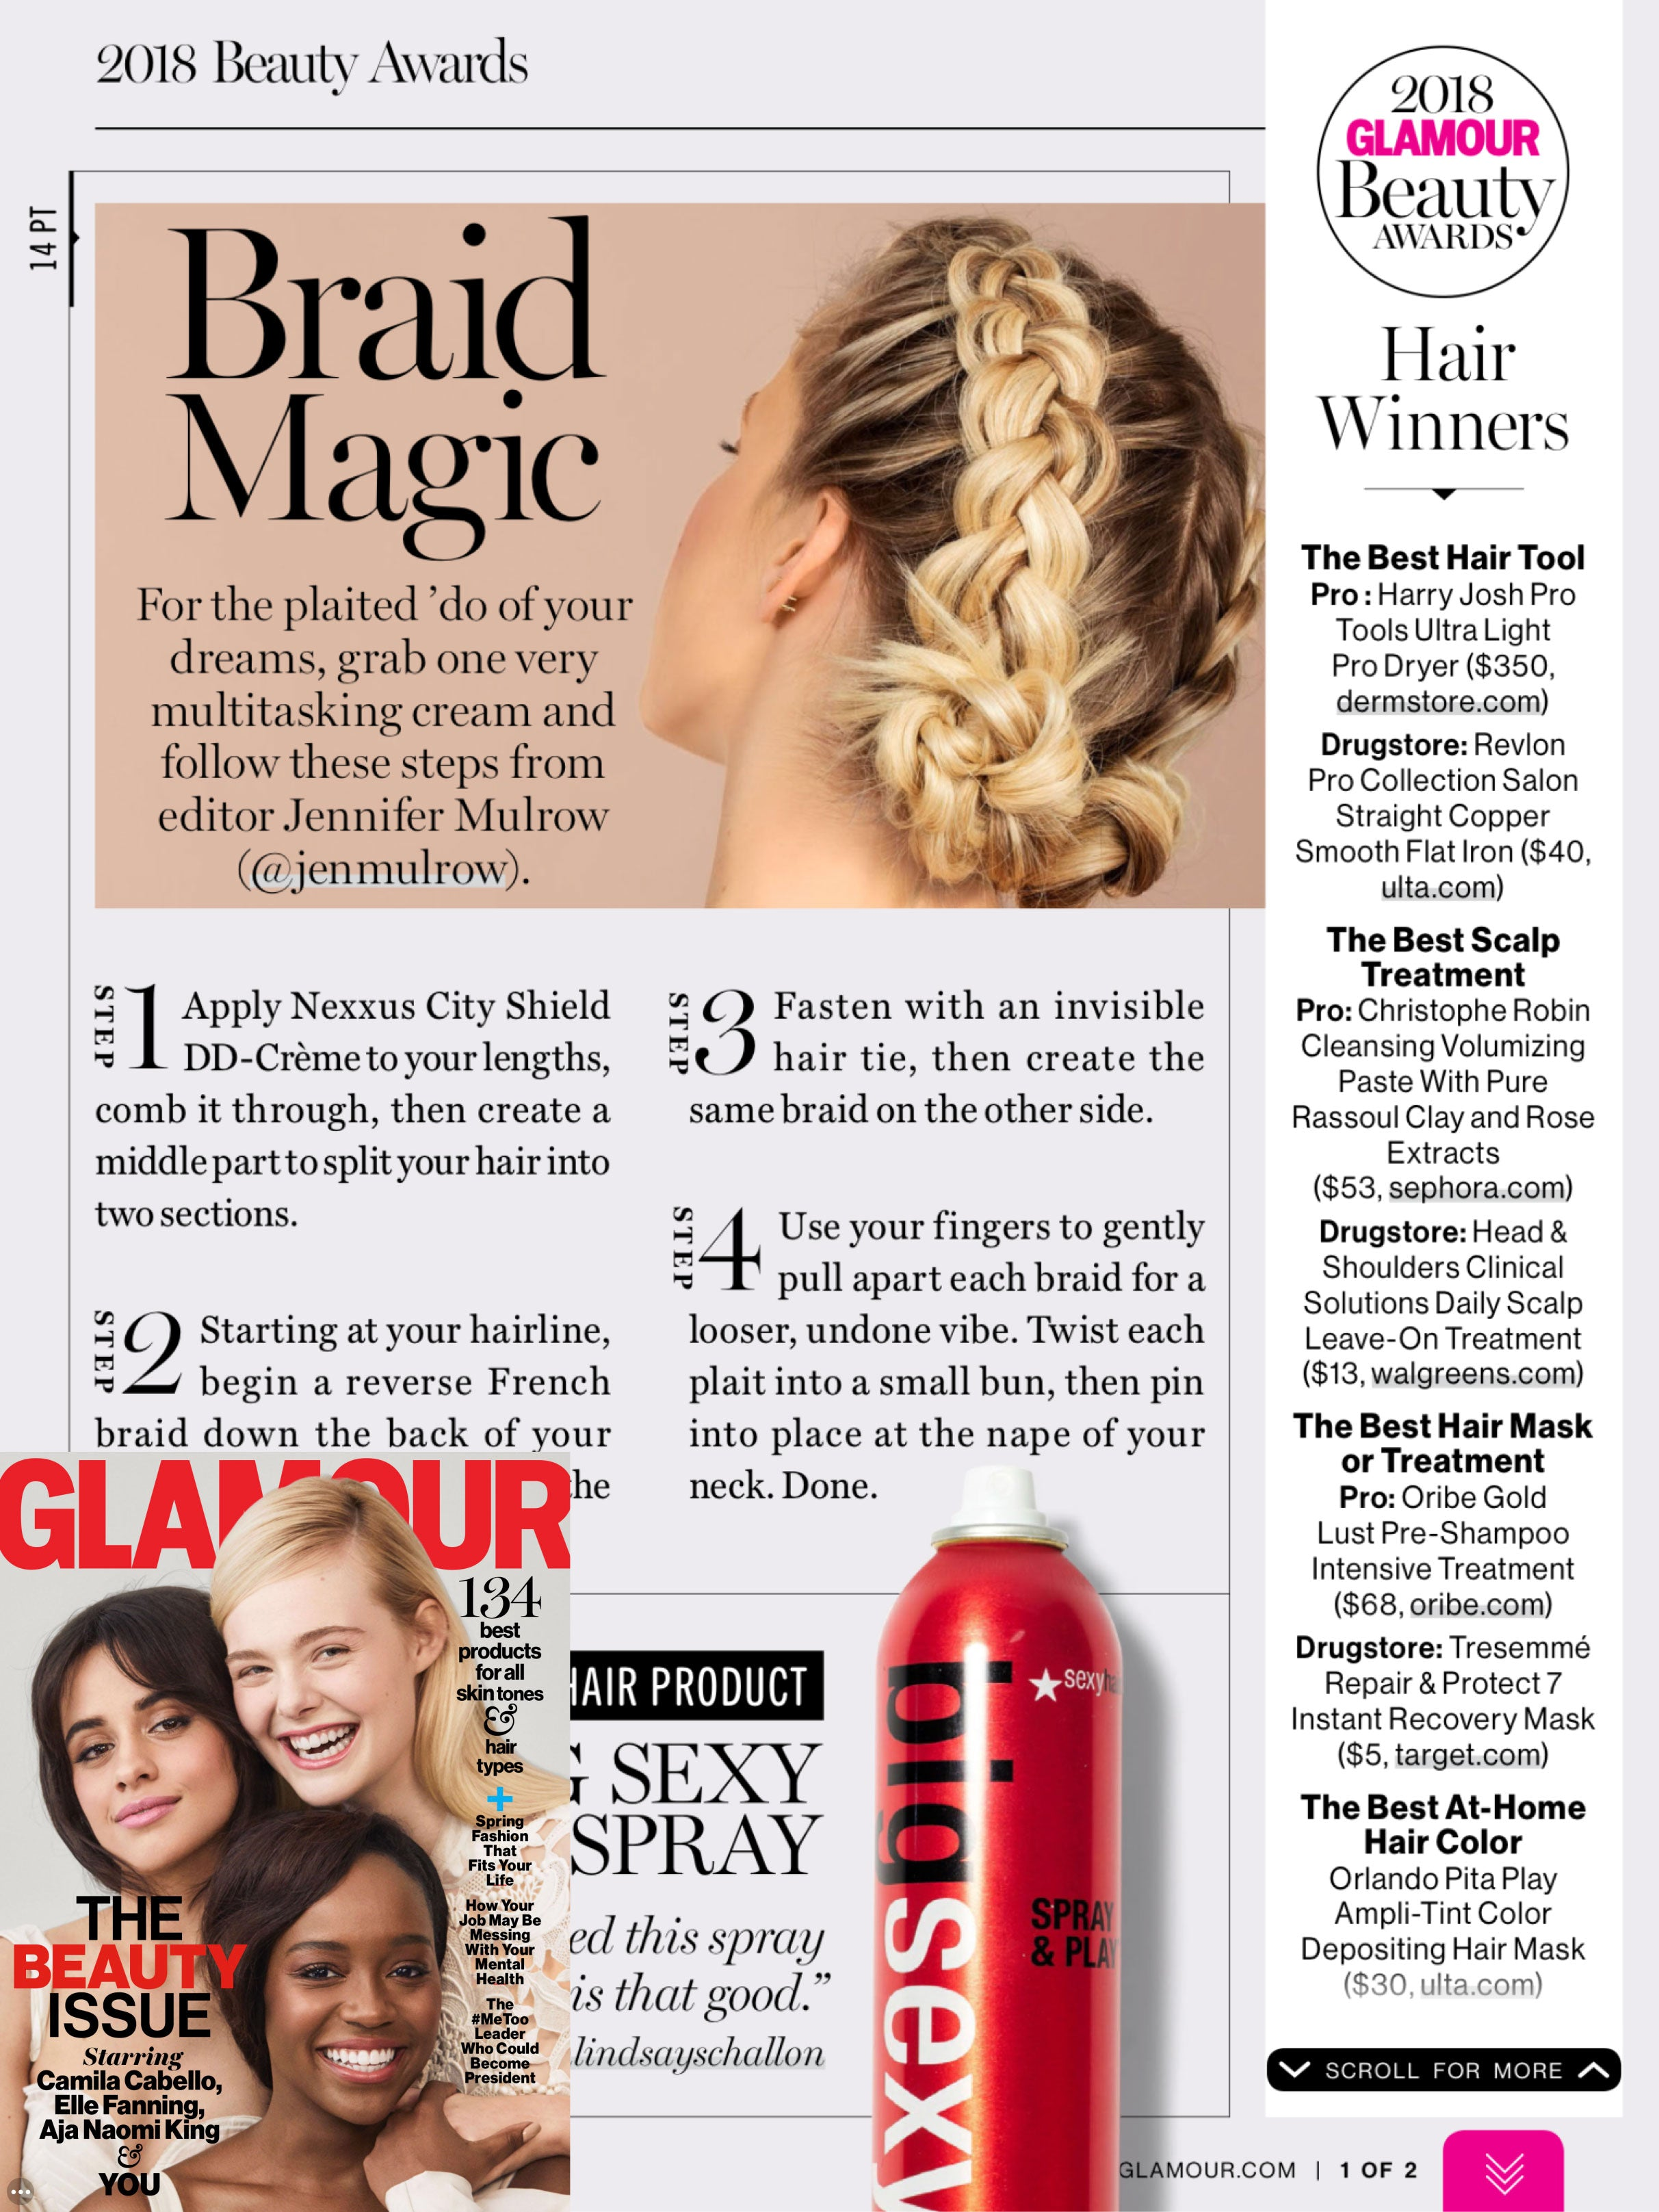 The Best At Home Hair Color 2018 Glamour Beauty Awards Orlando